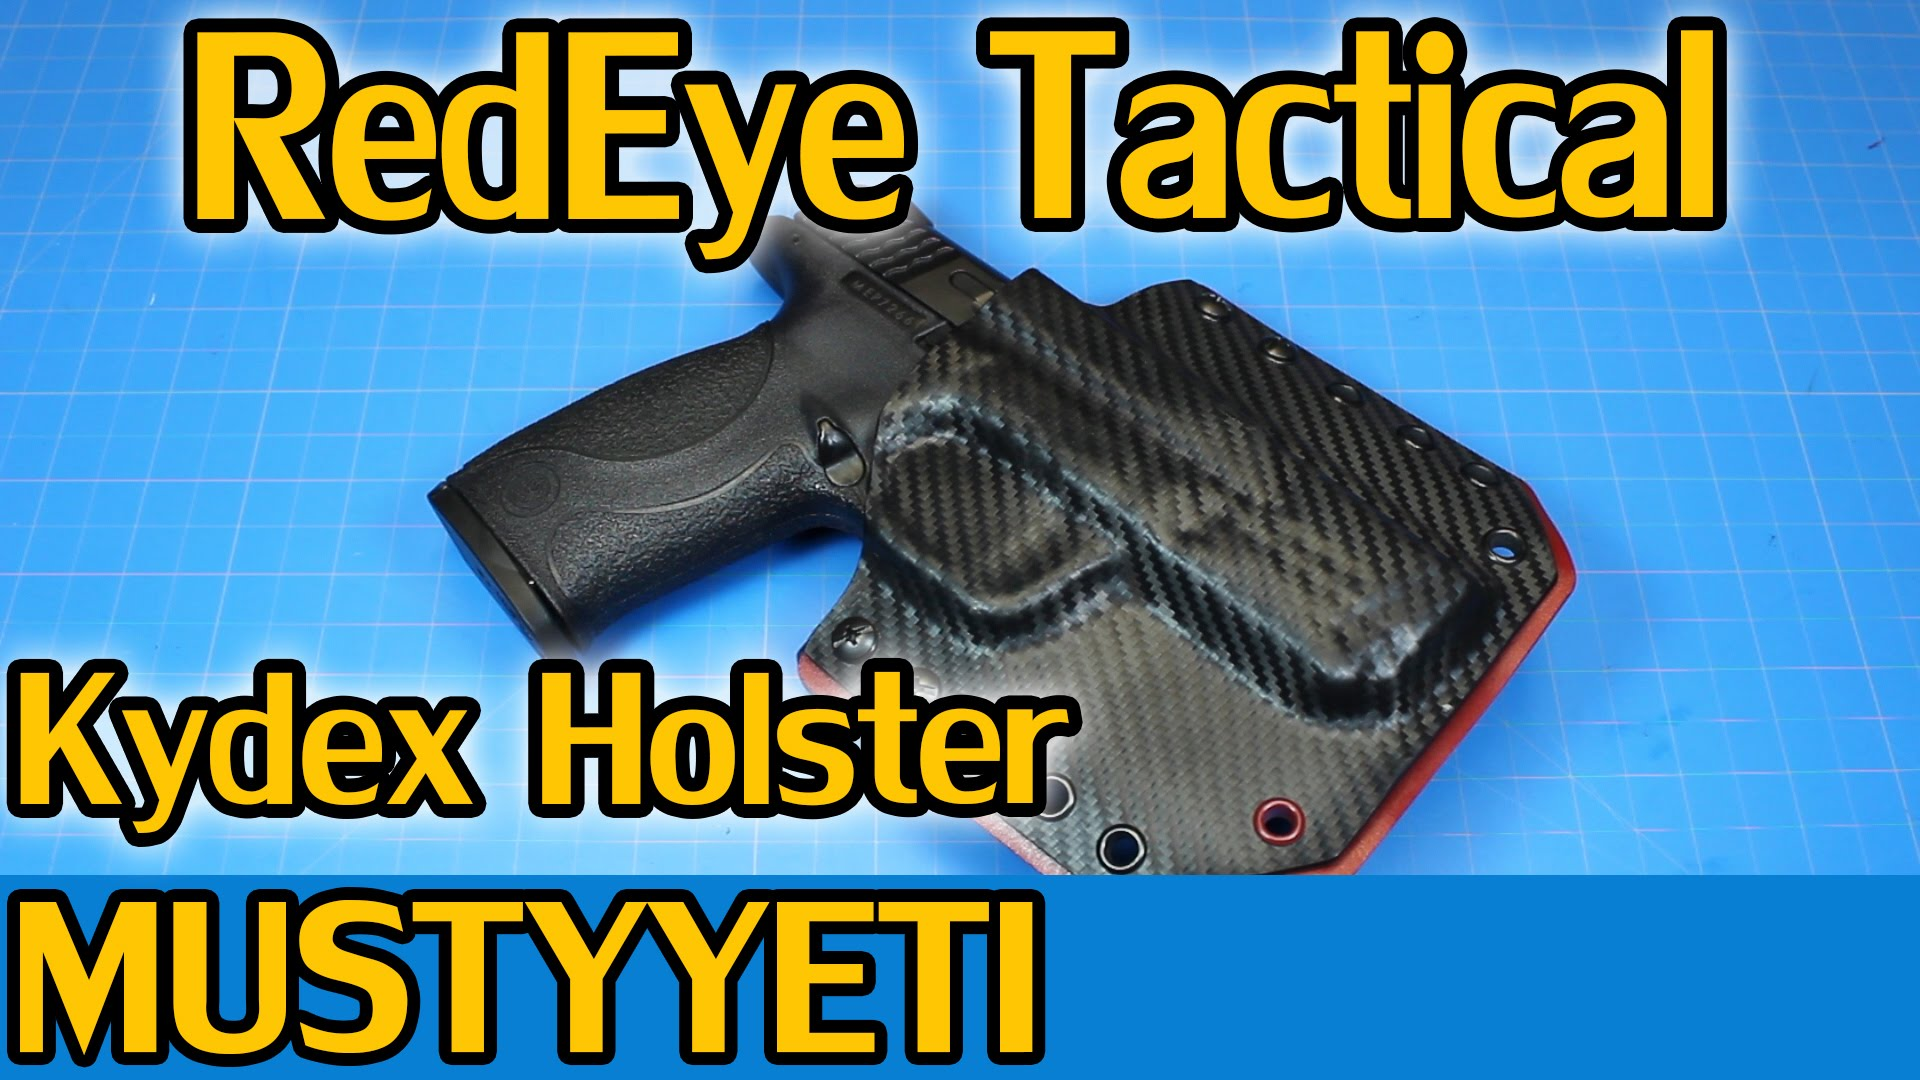 RedEye Tactical Kydex Holster :: Musty Yeti